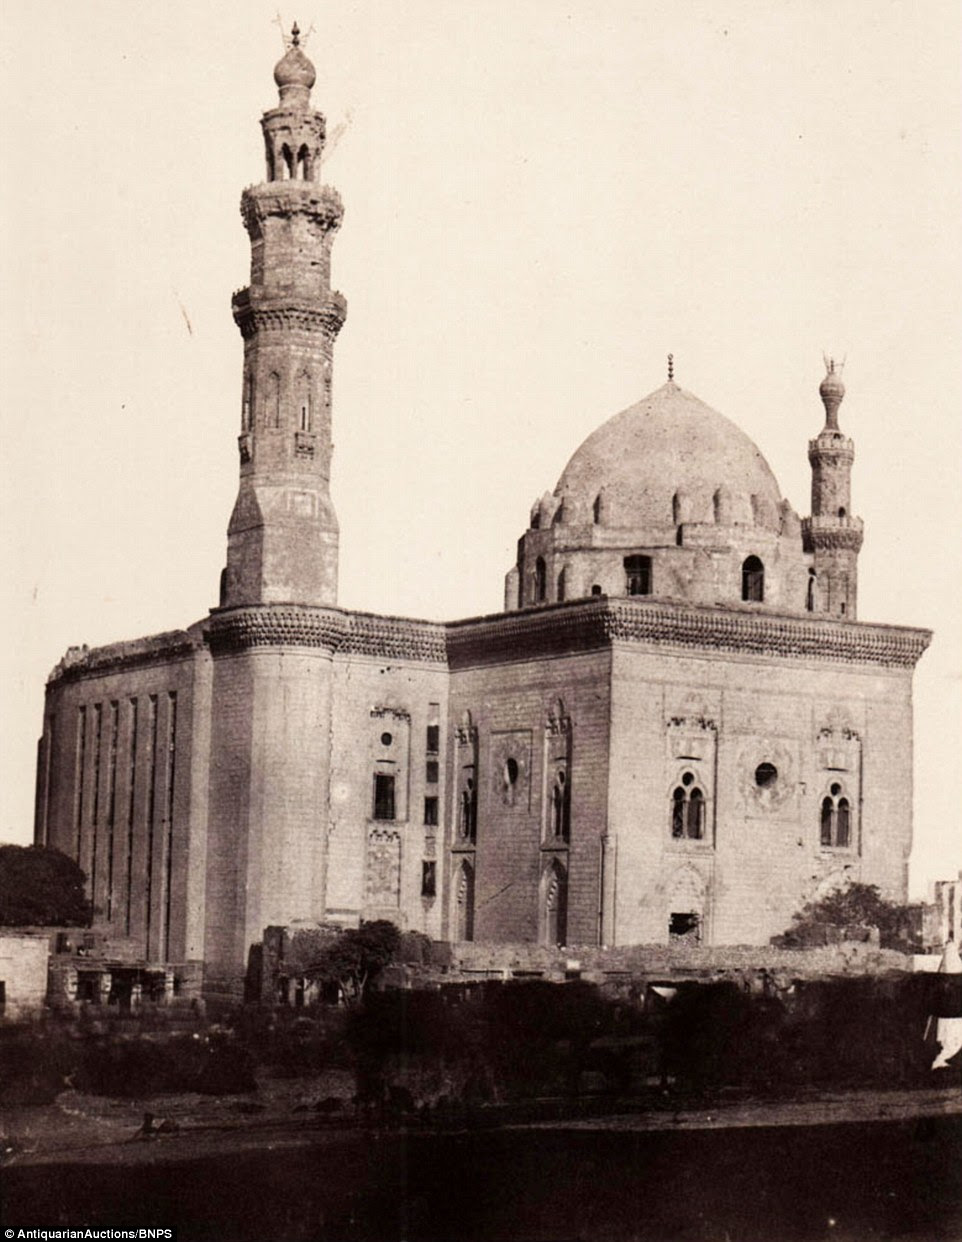 The Mosque of Sultan Hassan, a Mamluk era mosque located near the Citadel in Cairo, is part of a set that offers an extraordinary glimpse into a time when the region was in only the earliest throes of industrialisation